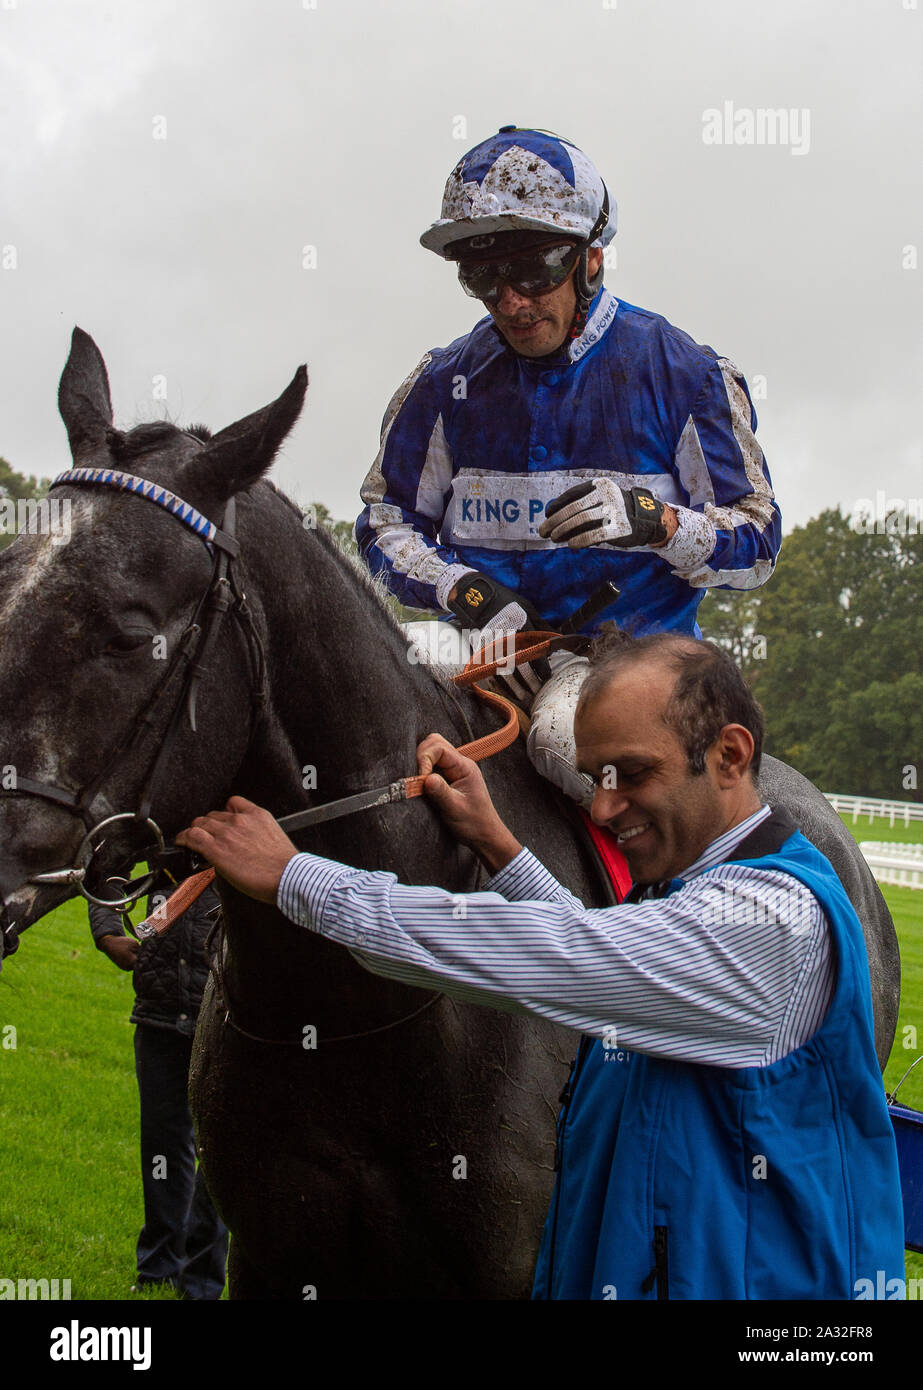 Autumn Racing Weekend & Ascot Beer Festival, Ascot Racecourse, Ascot, Berkshire, UK. 4th October, 2019. Jockey Silvestre De Sousa is splashed with mud during the Mar-Key Group Classified Stakes riding horse Fox Leicester.  Credit: Maureen McLean/Alamy Stock Photo